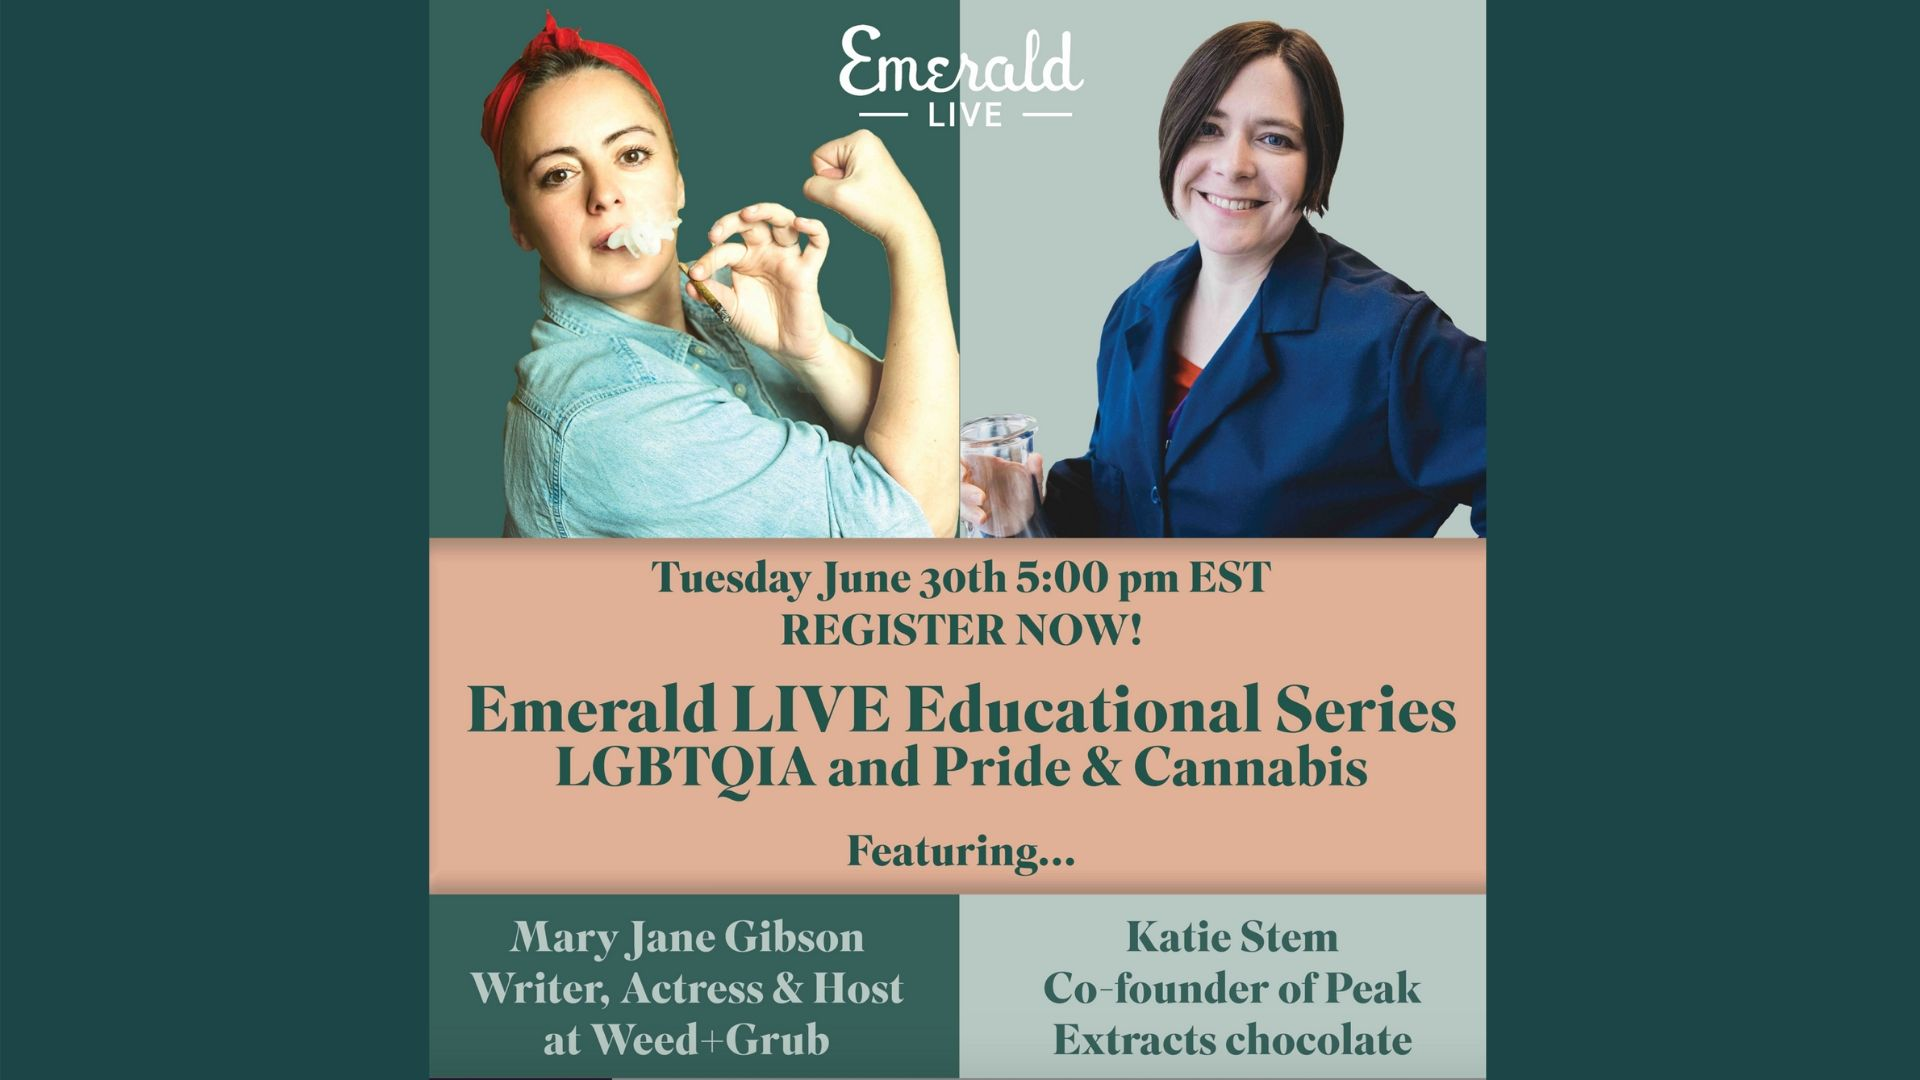 Emerald LIVE Educational Series